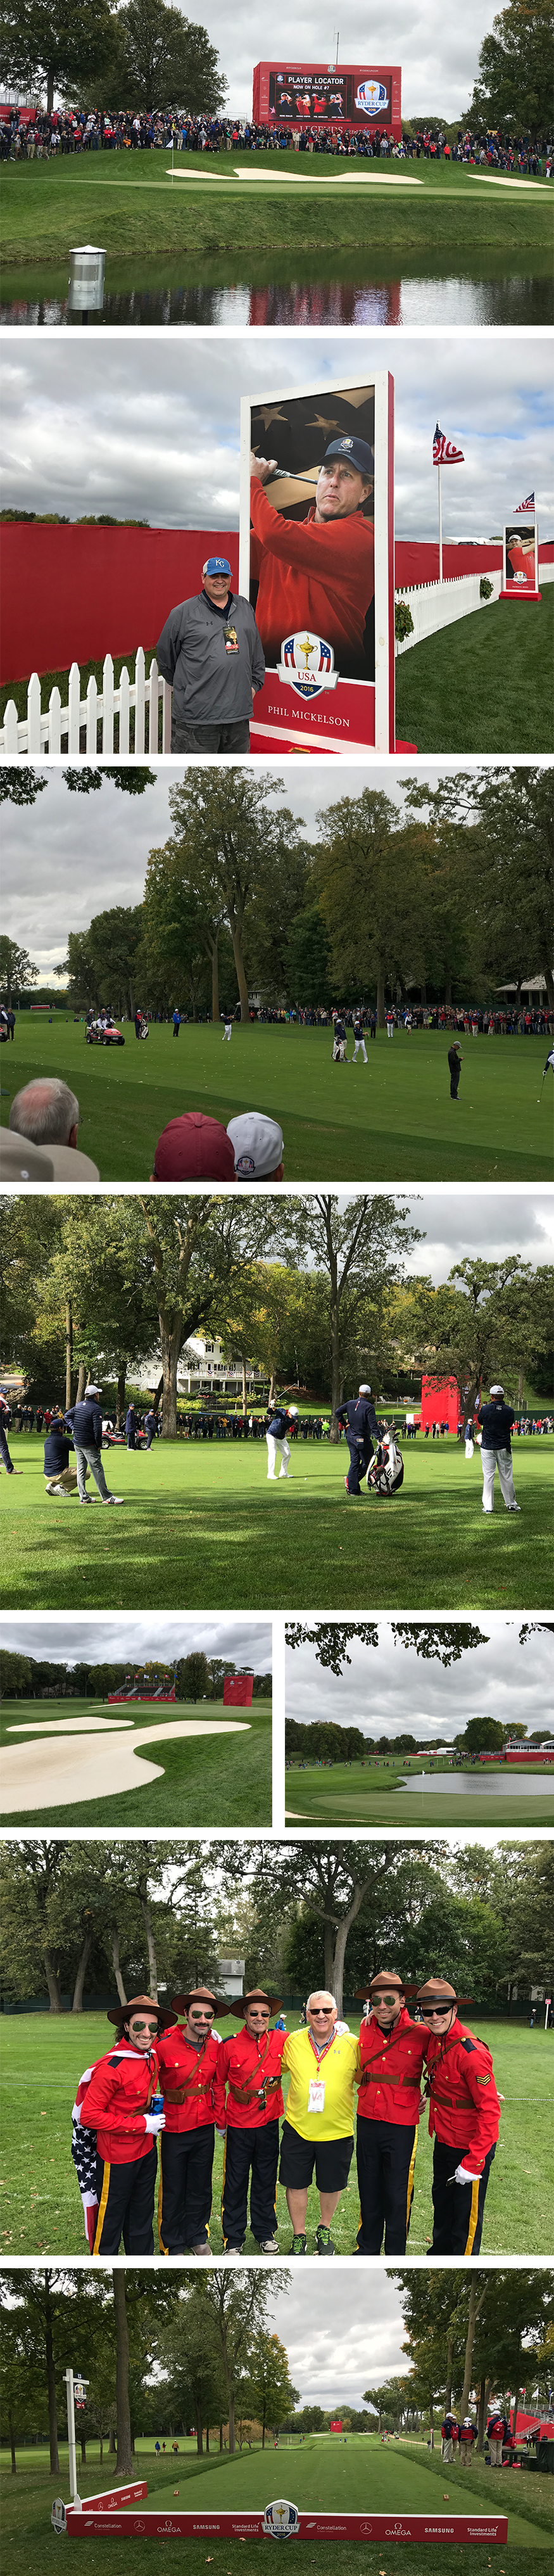 ryder cup 2016 iphone7 photography